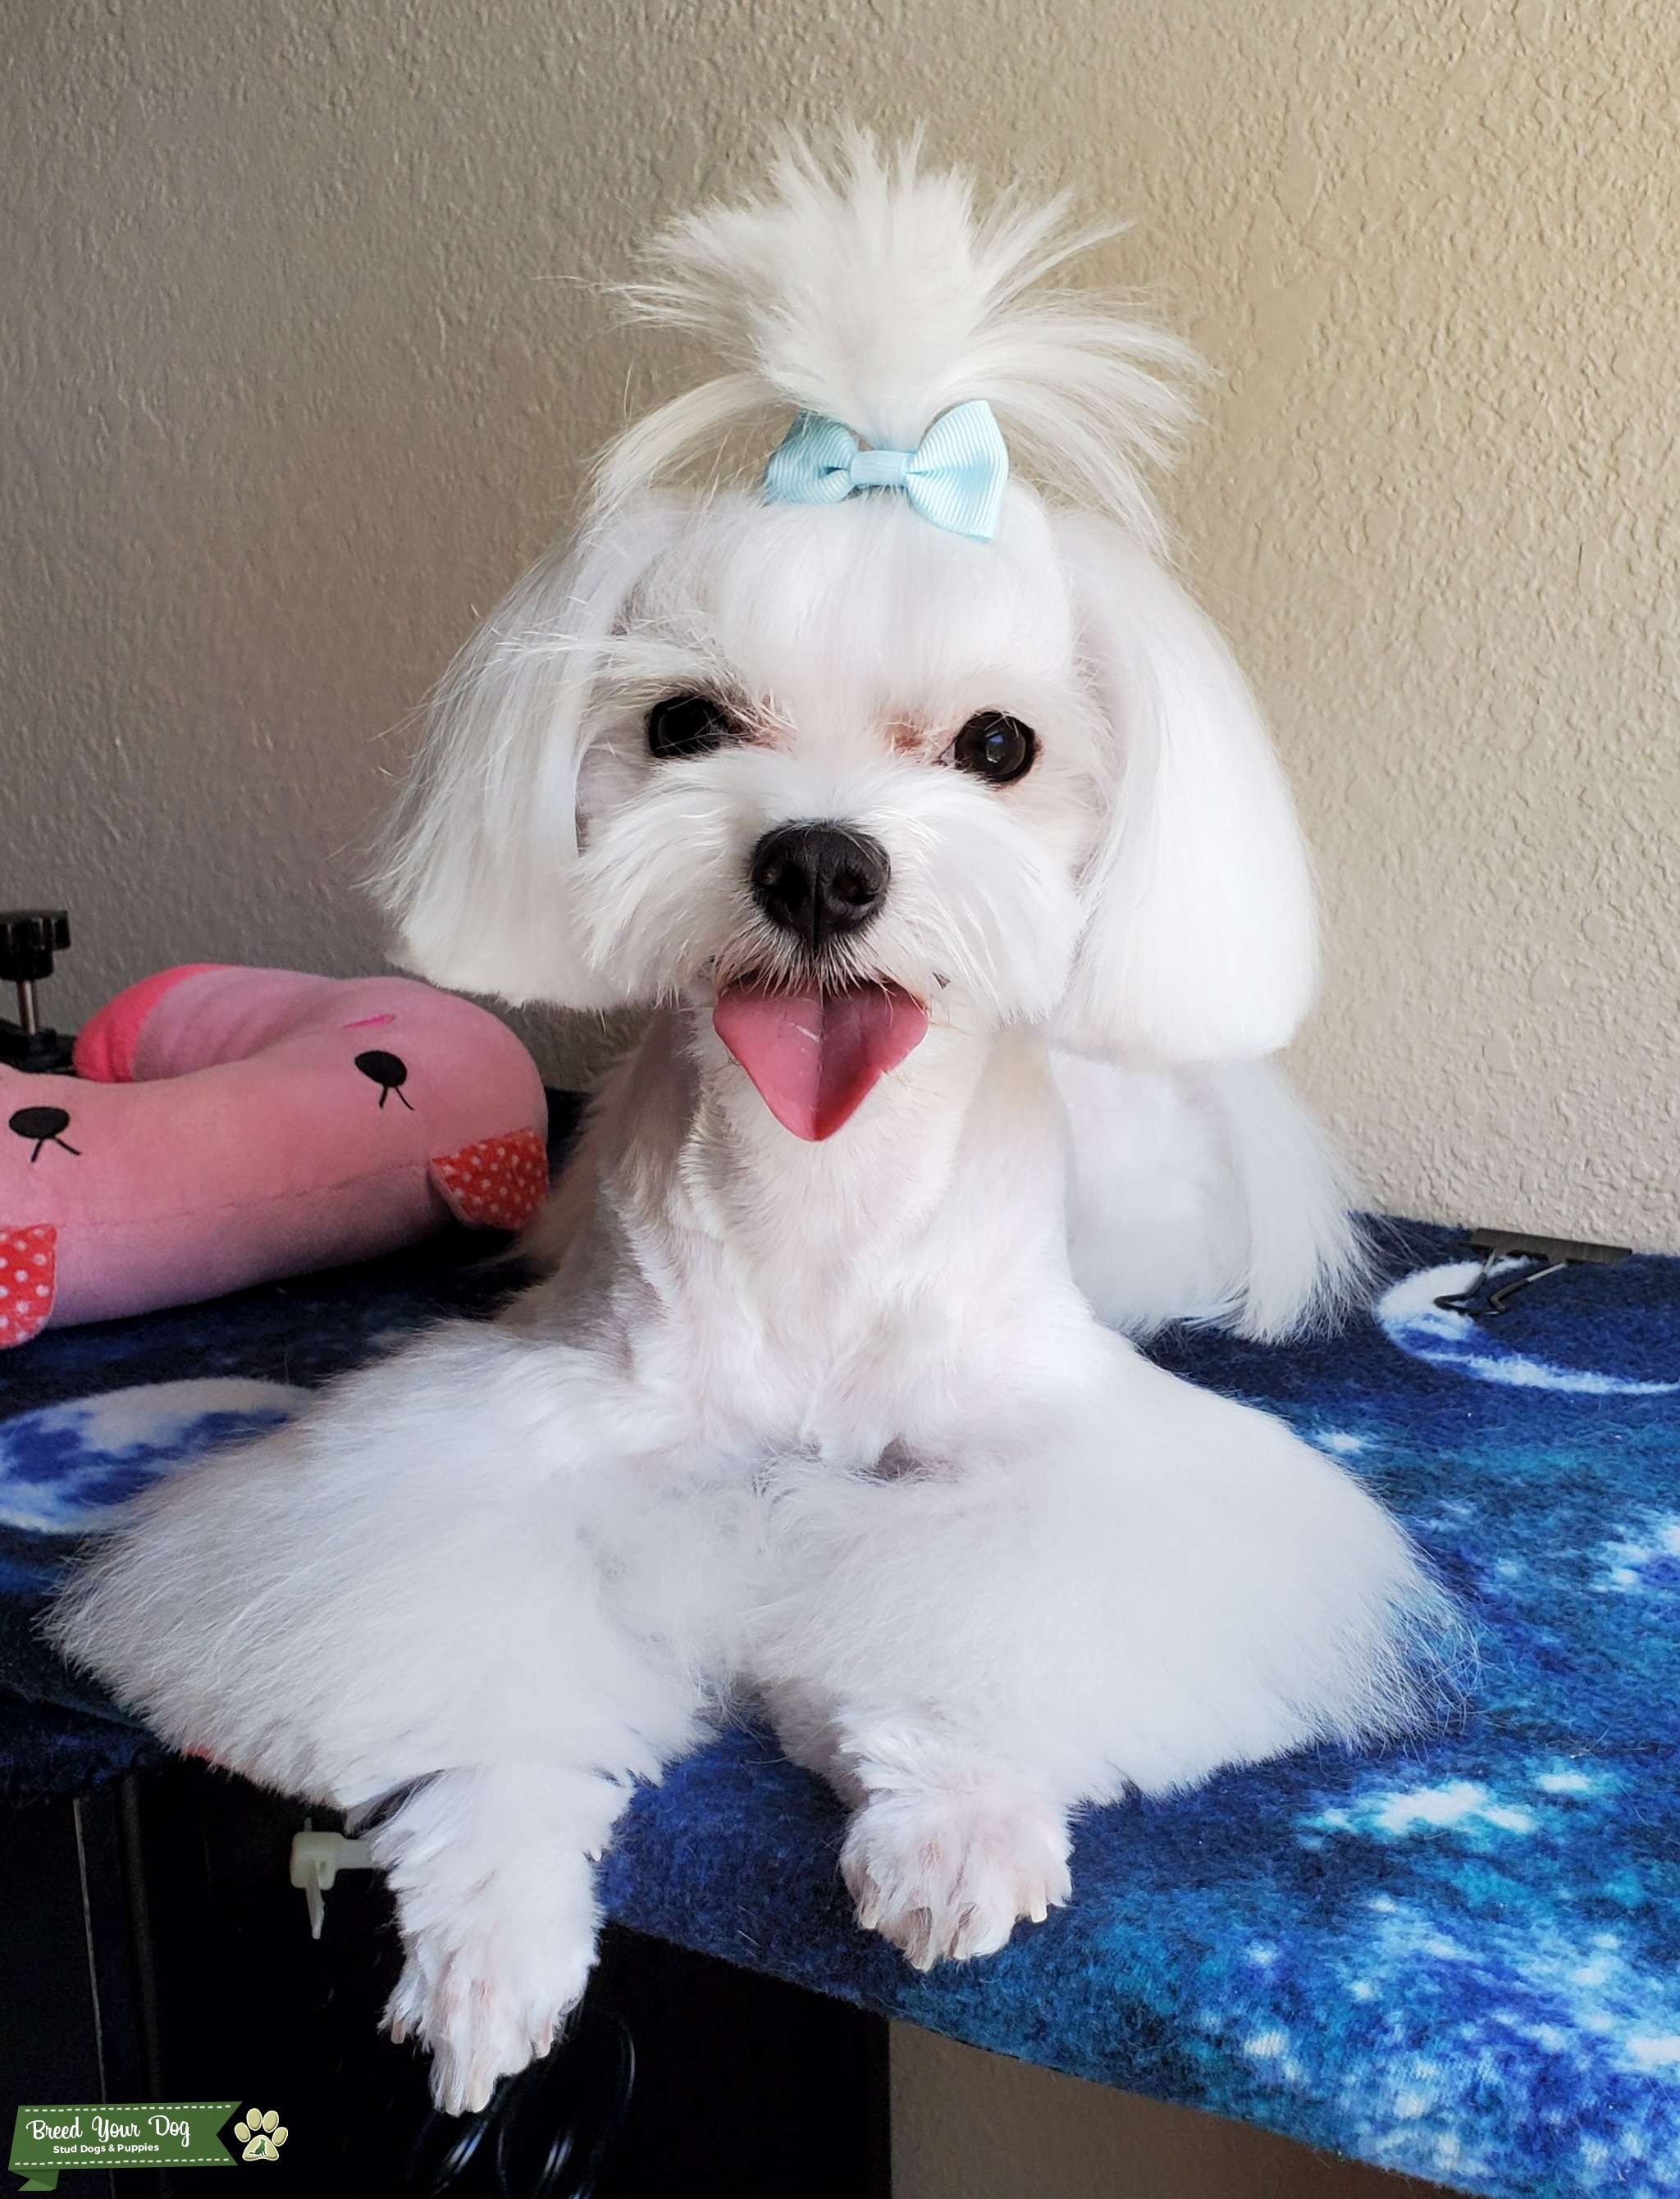 I'M LOOKING FOR A MALTESE GIRLFRIEND Listing Image Big